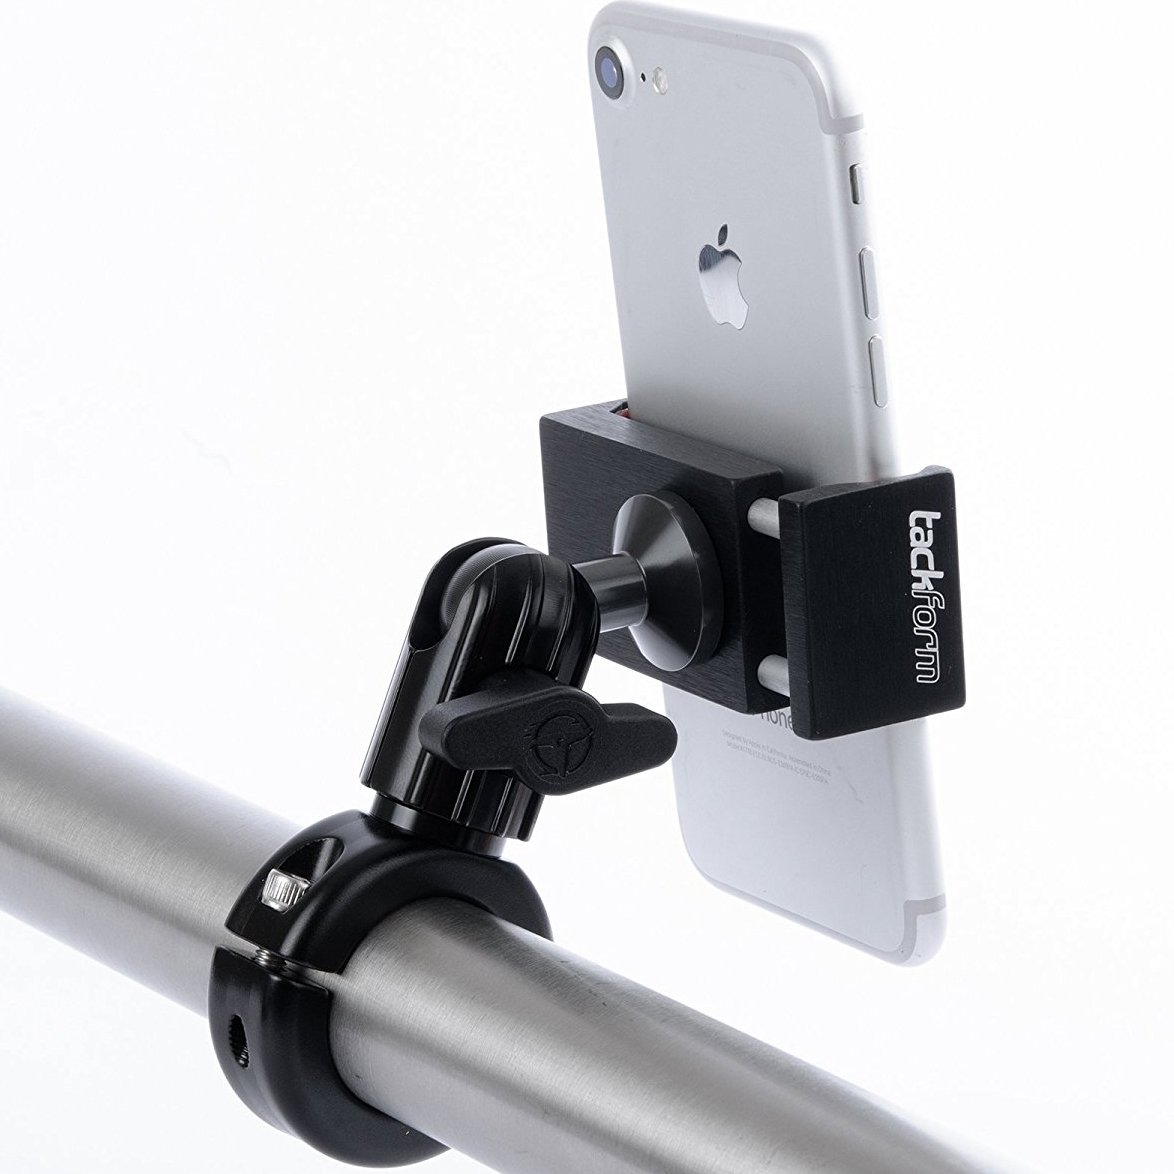 Metal Motorcycle Mount for Phone - by TACKFORM [Enduro Series] - NO SLINGS NEEDED. Rock solid holder for Regular and Plus sized iPhone and Samsung devices. Industrial Spring Grip by Tackform Solutions (Image #1)